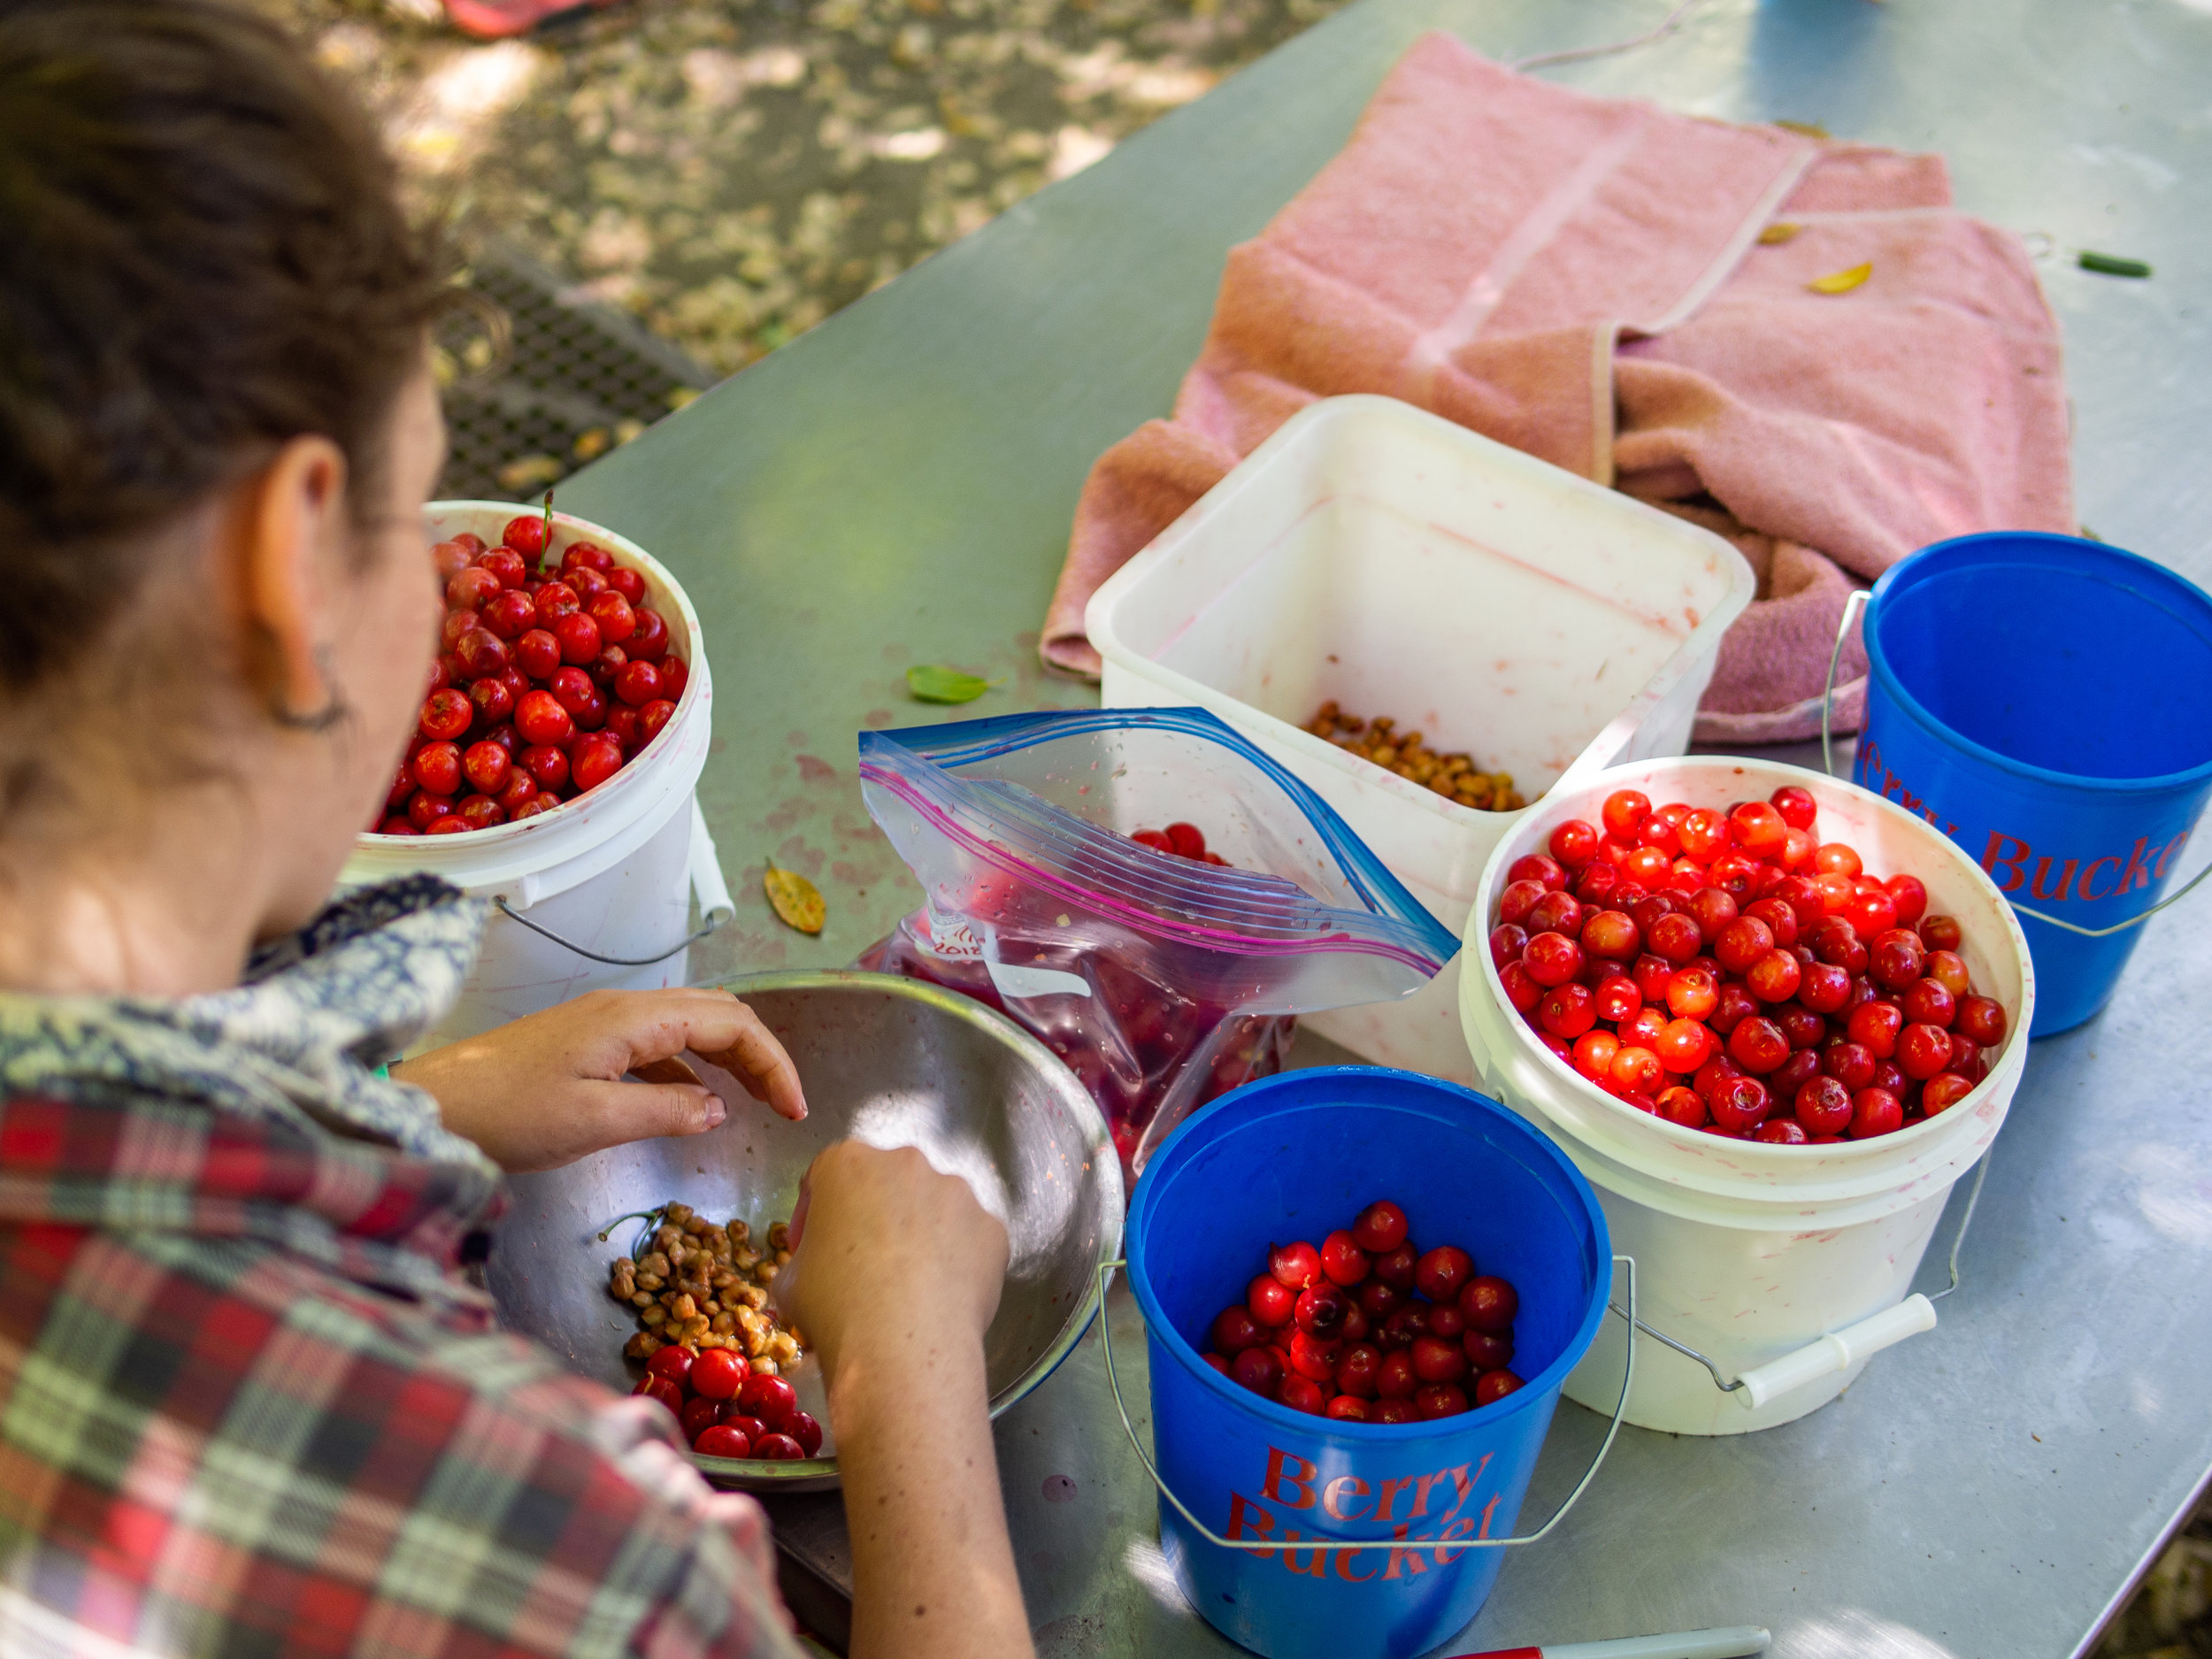 Also, pick fruits and pit thousands of sour cherries for PIE!!!